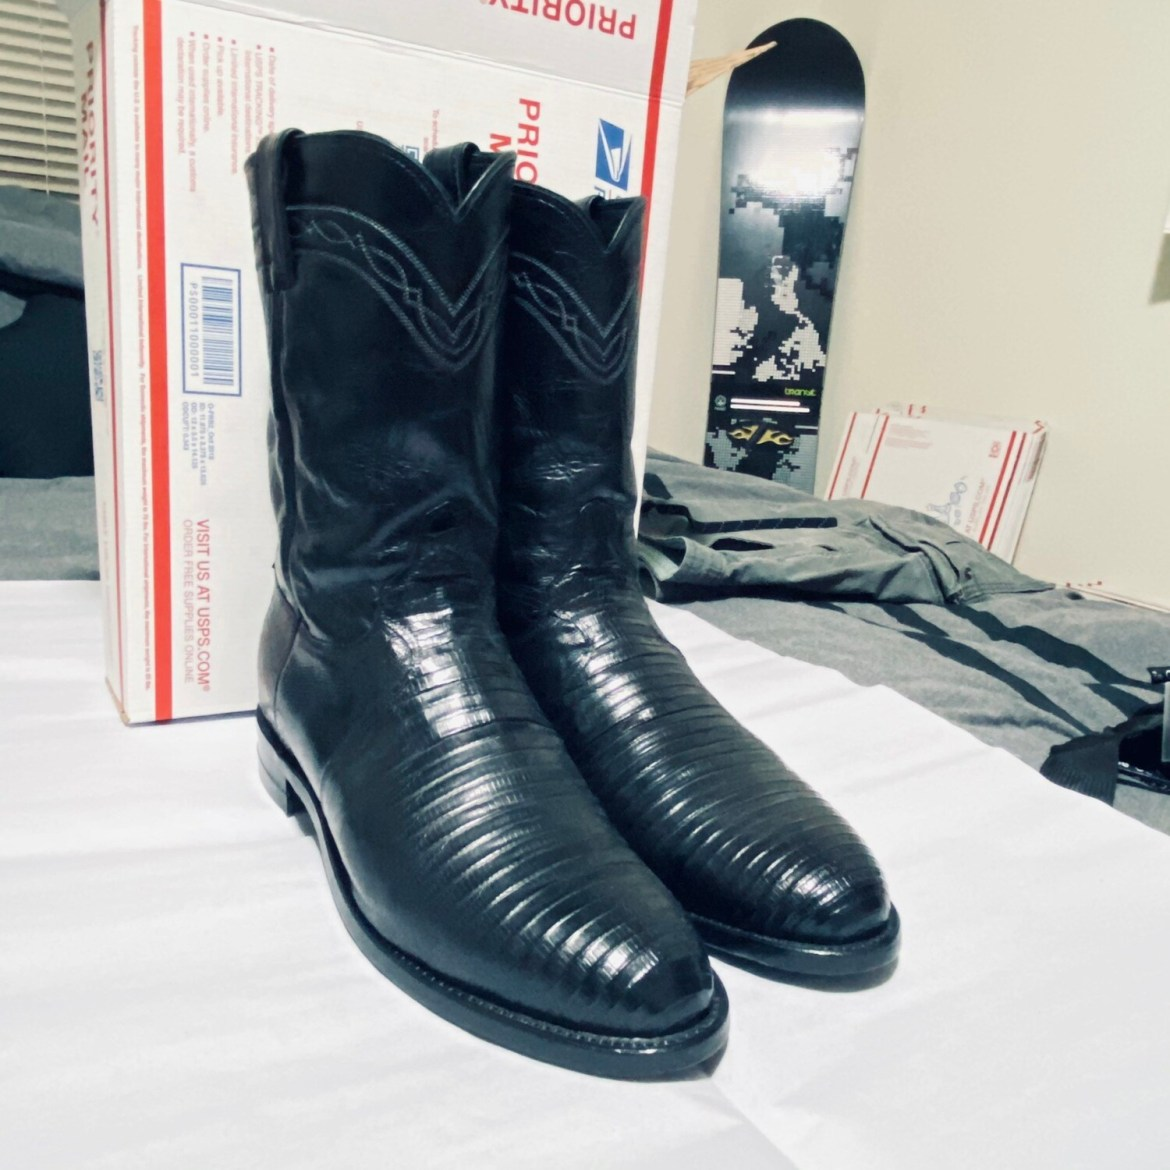 JUSTIN 10.5D BLACK IGUANA LIZARD MADE IN USA #3112 BOOTS GOOD CONDITION SKU #9 BEST OFFER